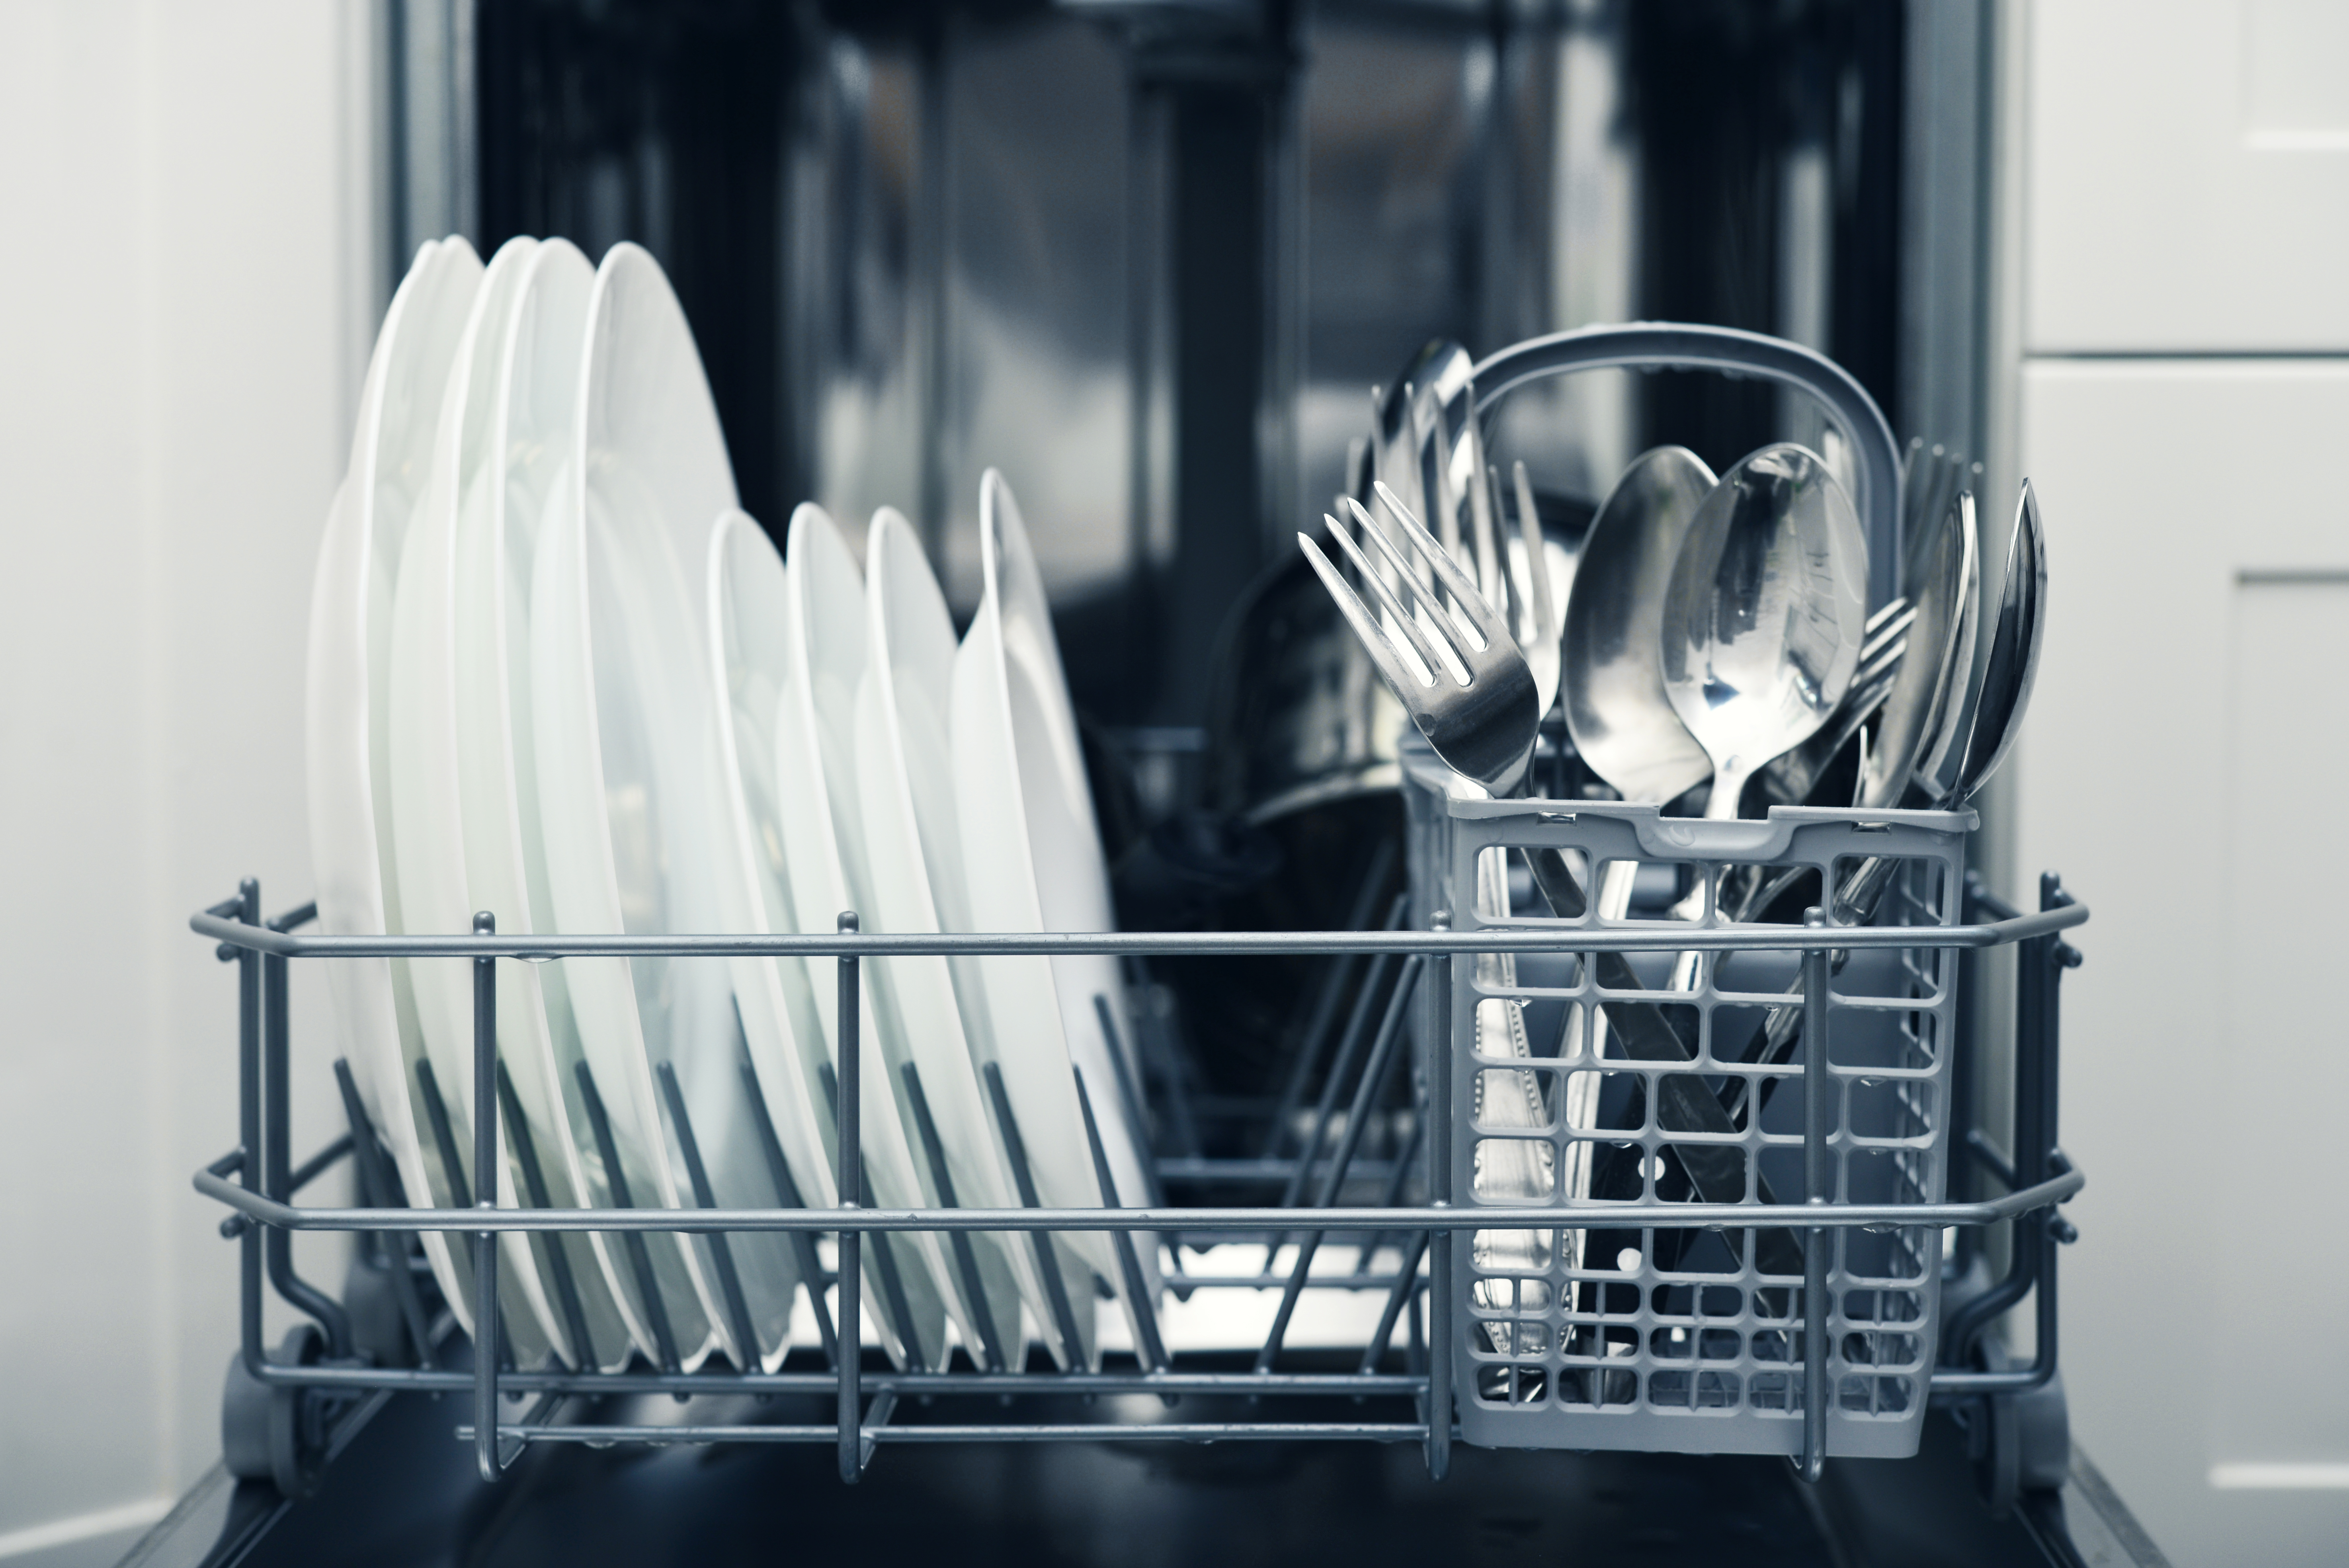 How to Troubleshoot a Bosch Dishwasher That Doesn't Fill